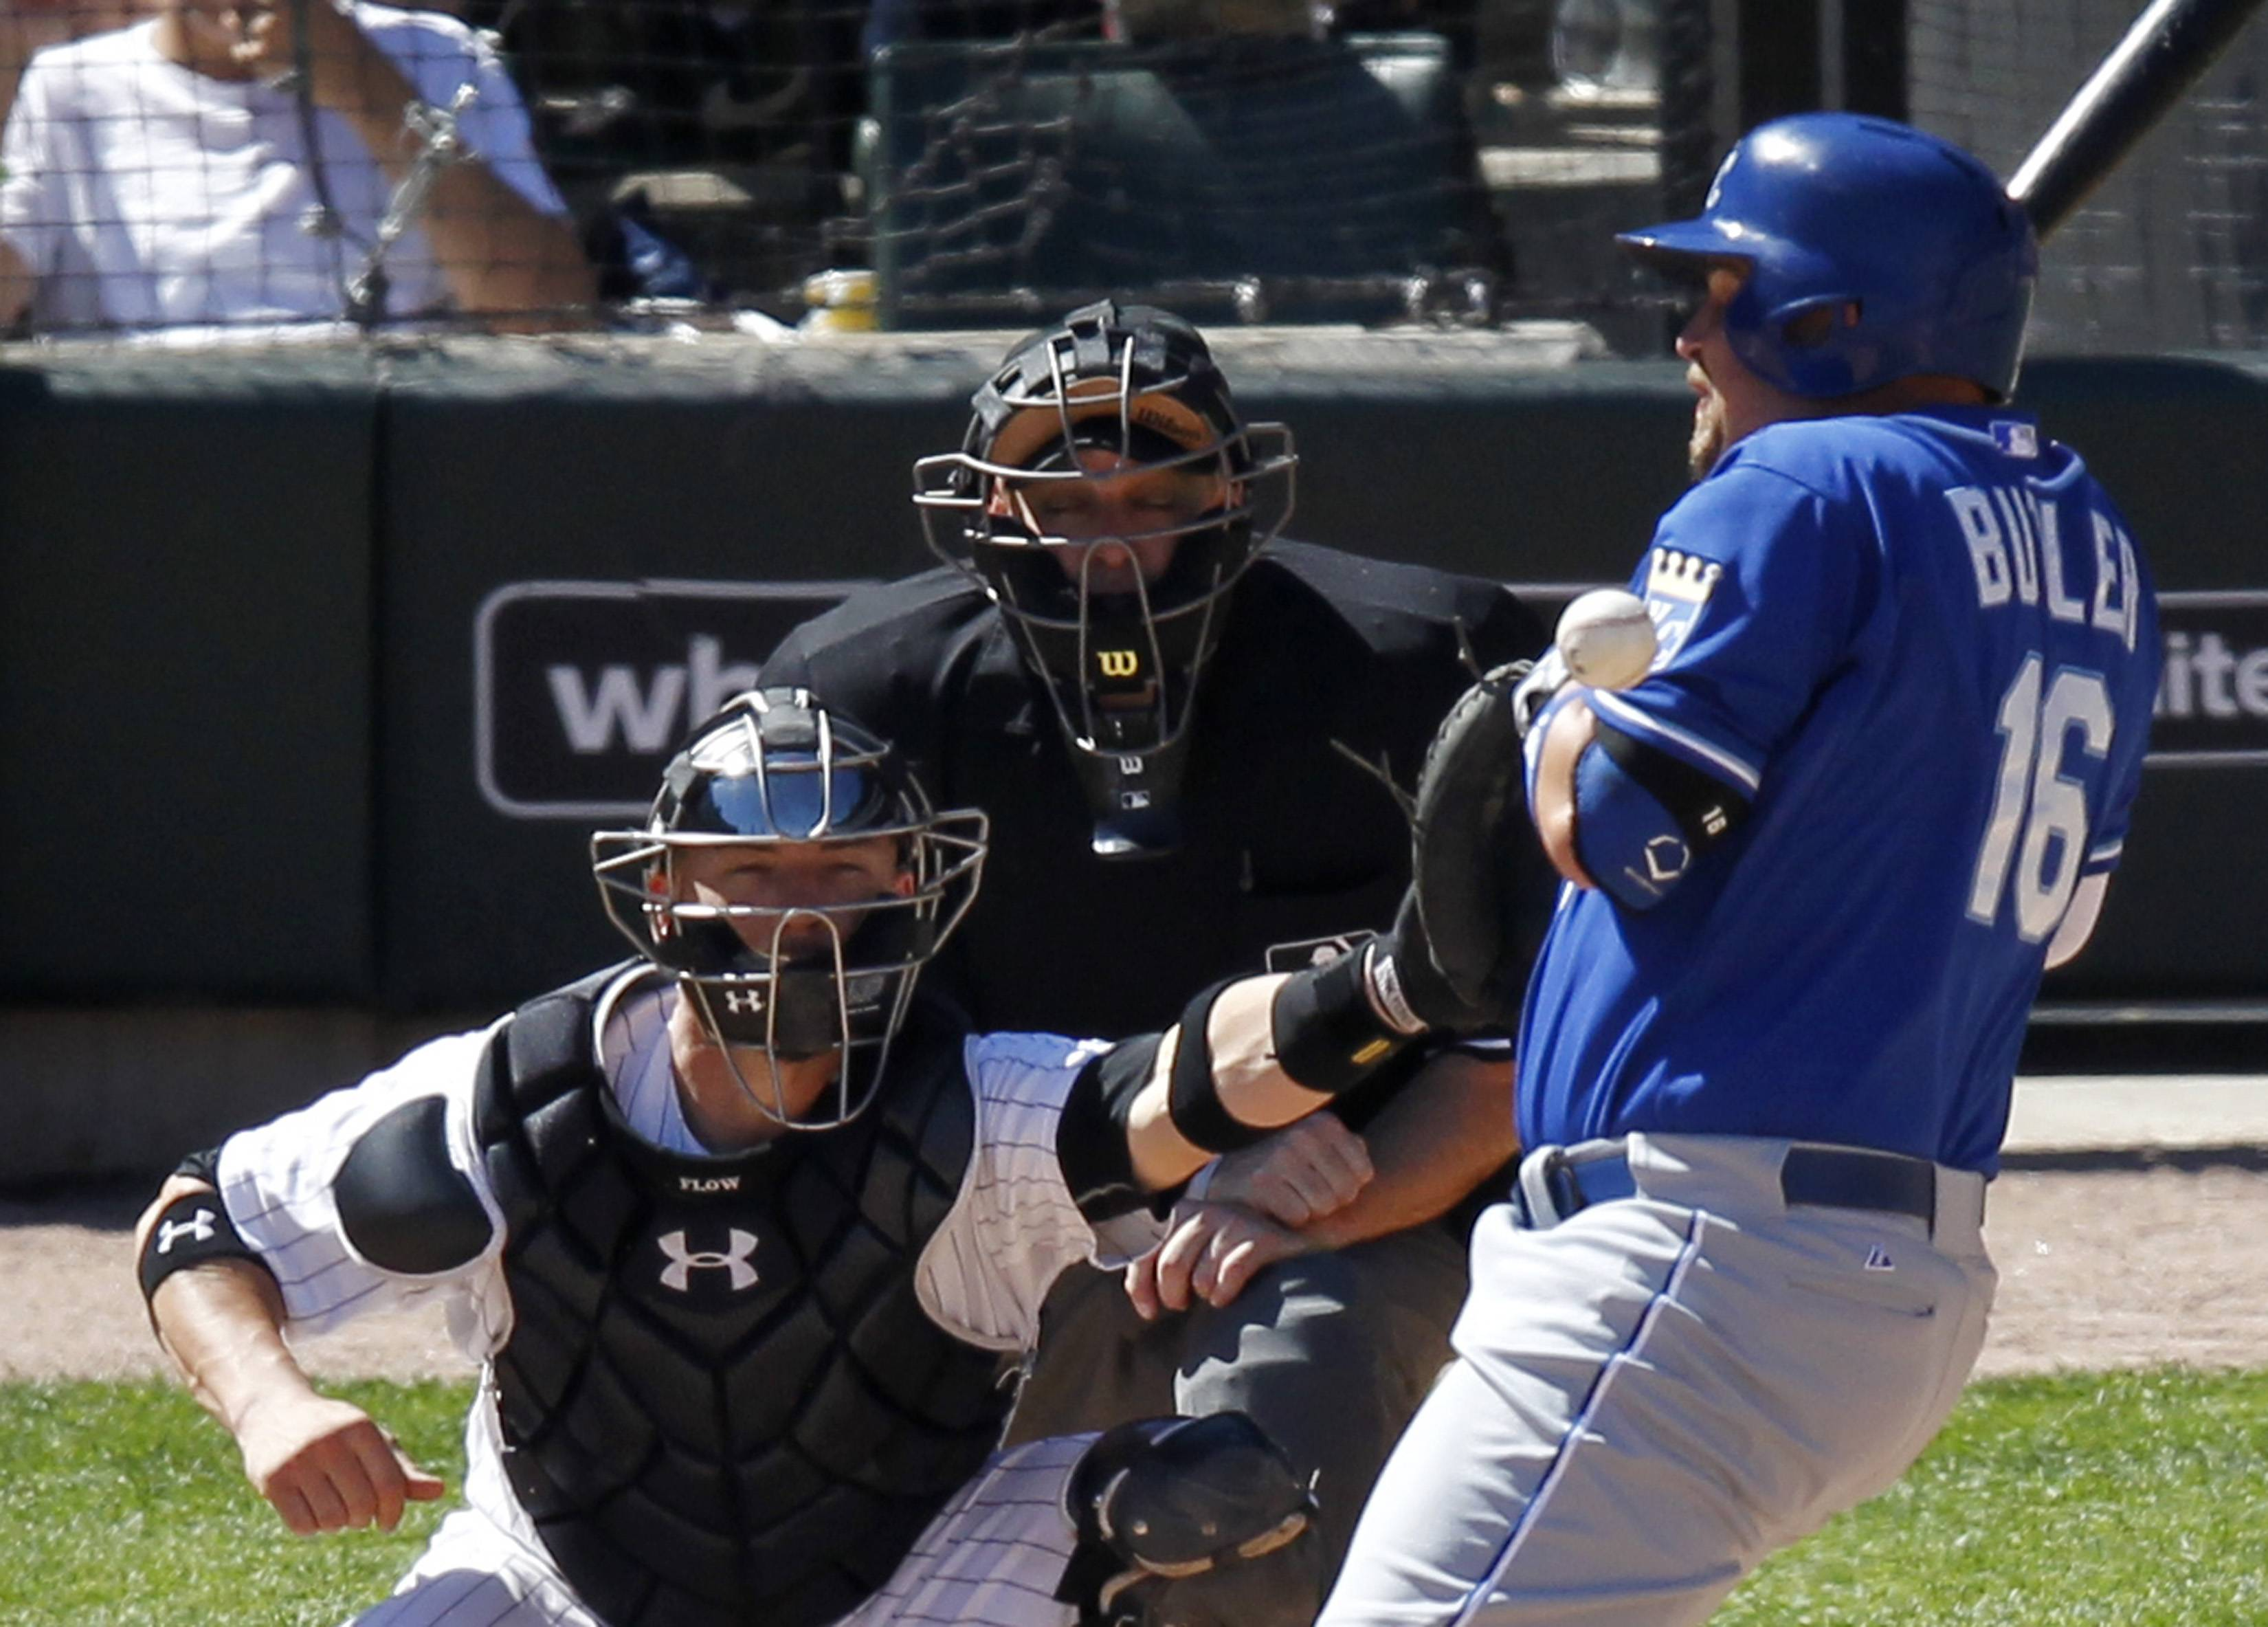 Kansas City Royals' pinch hitter Billy Butler gets hit by a ball from Chicago White Sox relief pitcher Ronald Belisario during the eighth inning of a baseball game Wednesday, July 23, 2014, in Chicago, as Sox catcher Tyler Flowers and home plate umpire Andy Fletcher look on.